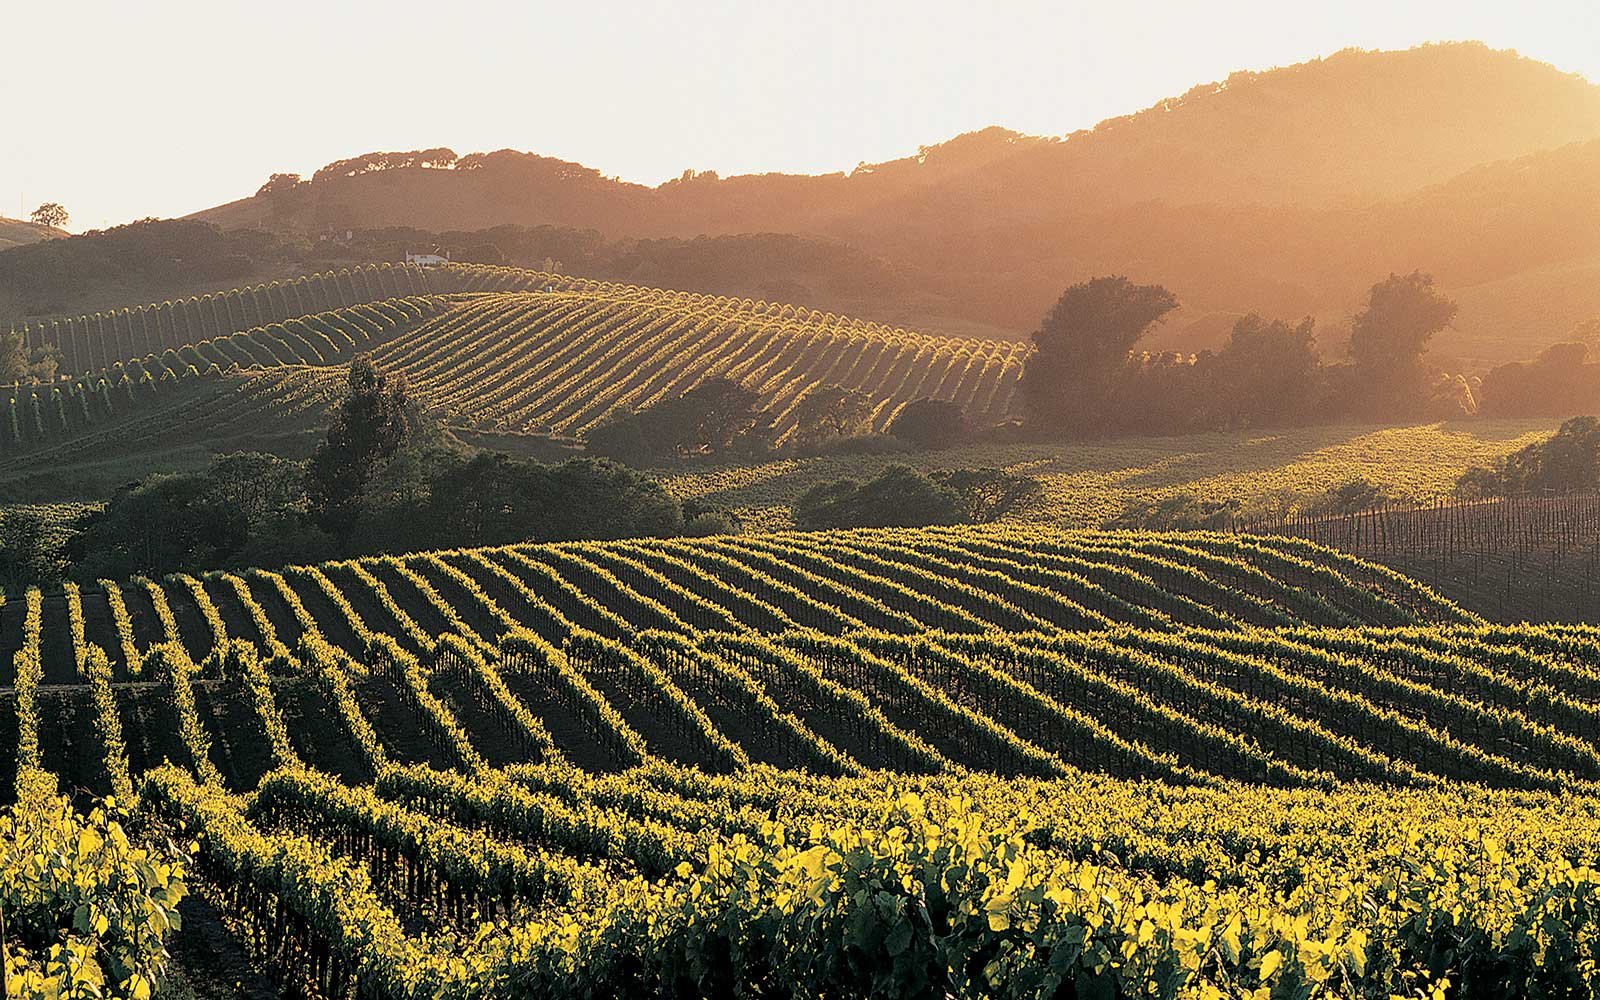 The Ultimate Napa Valley Tour: Eat and Drink With T+L's Editor in Chief As Your Guide